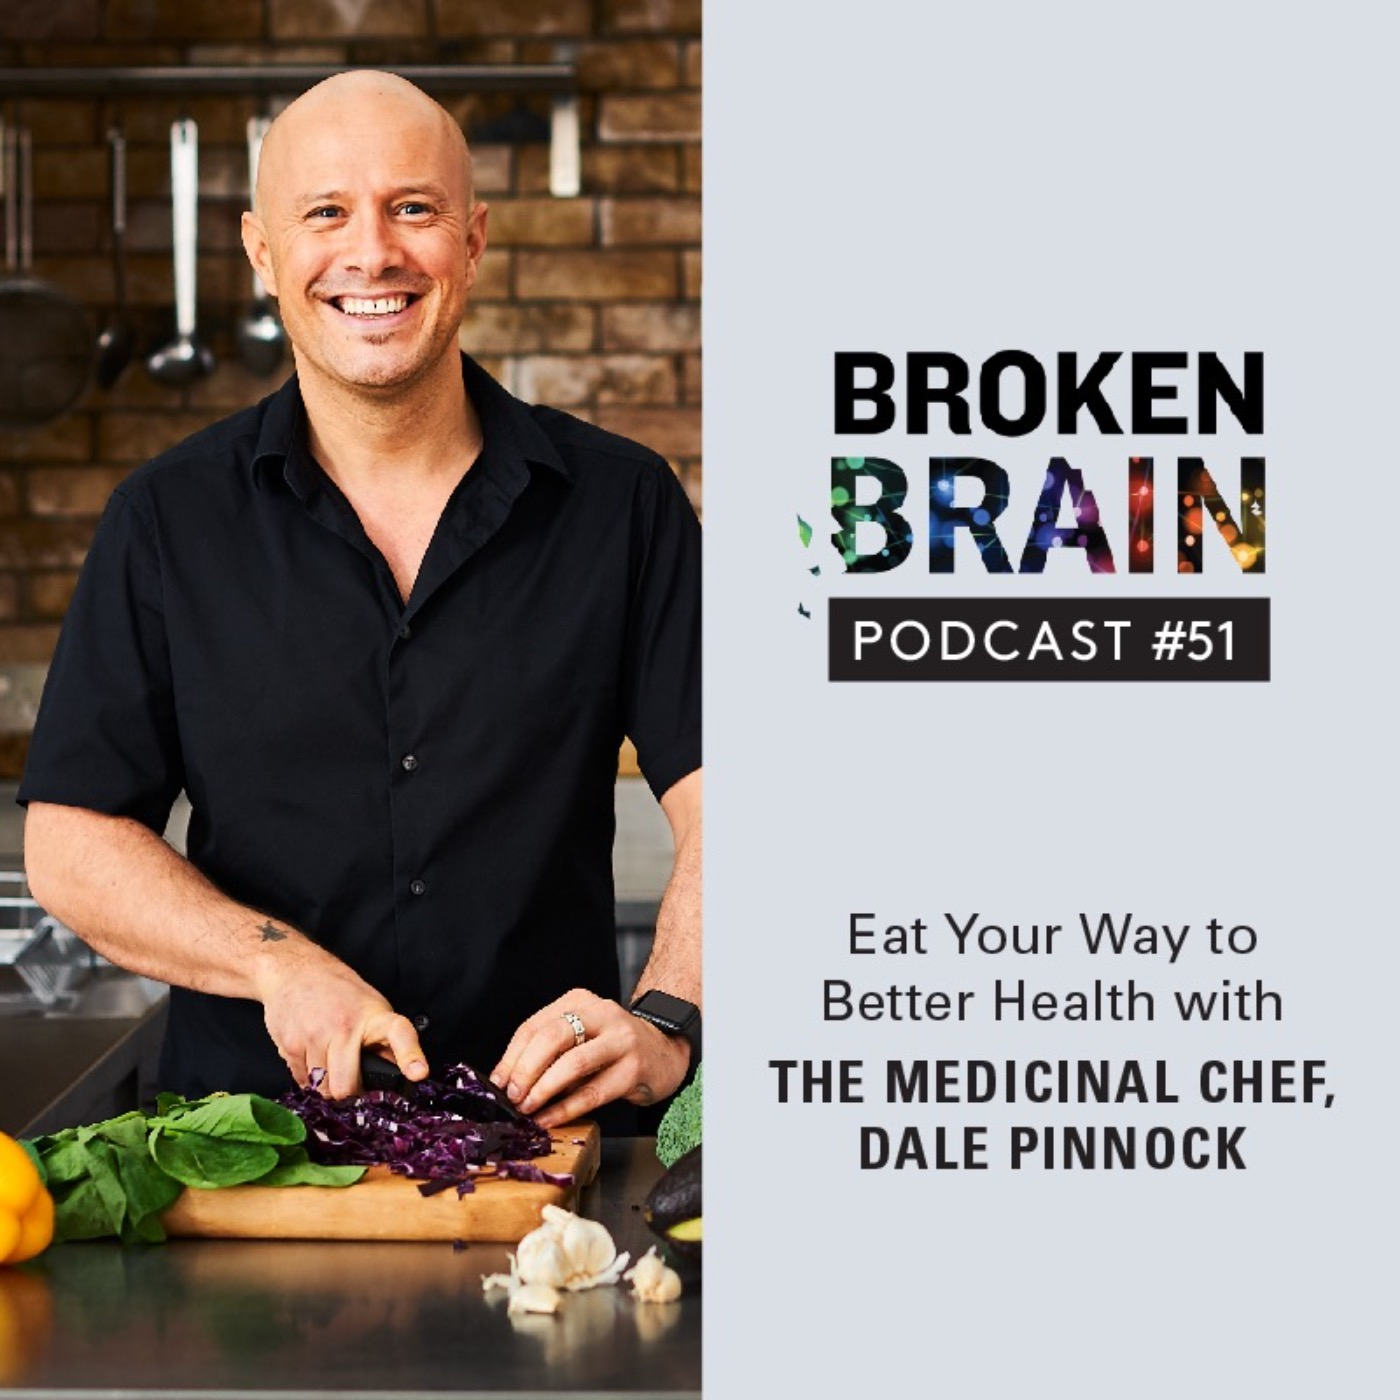 #51: Eat Your Way to Better Health with The Medicinal Chef, Dale Pinnock